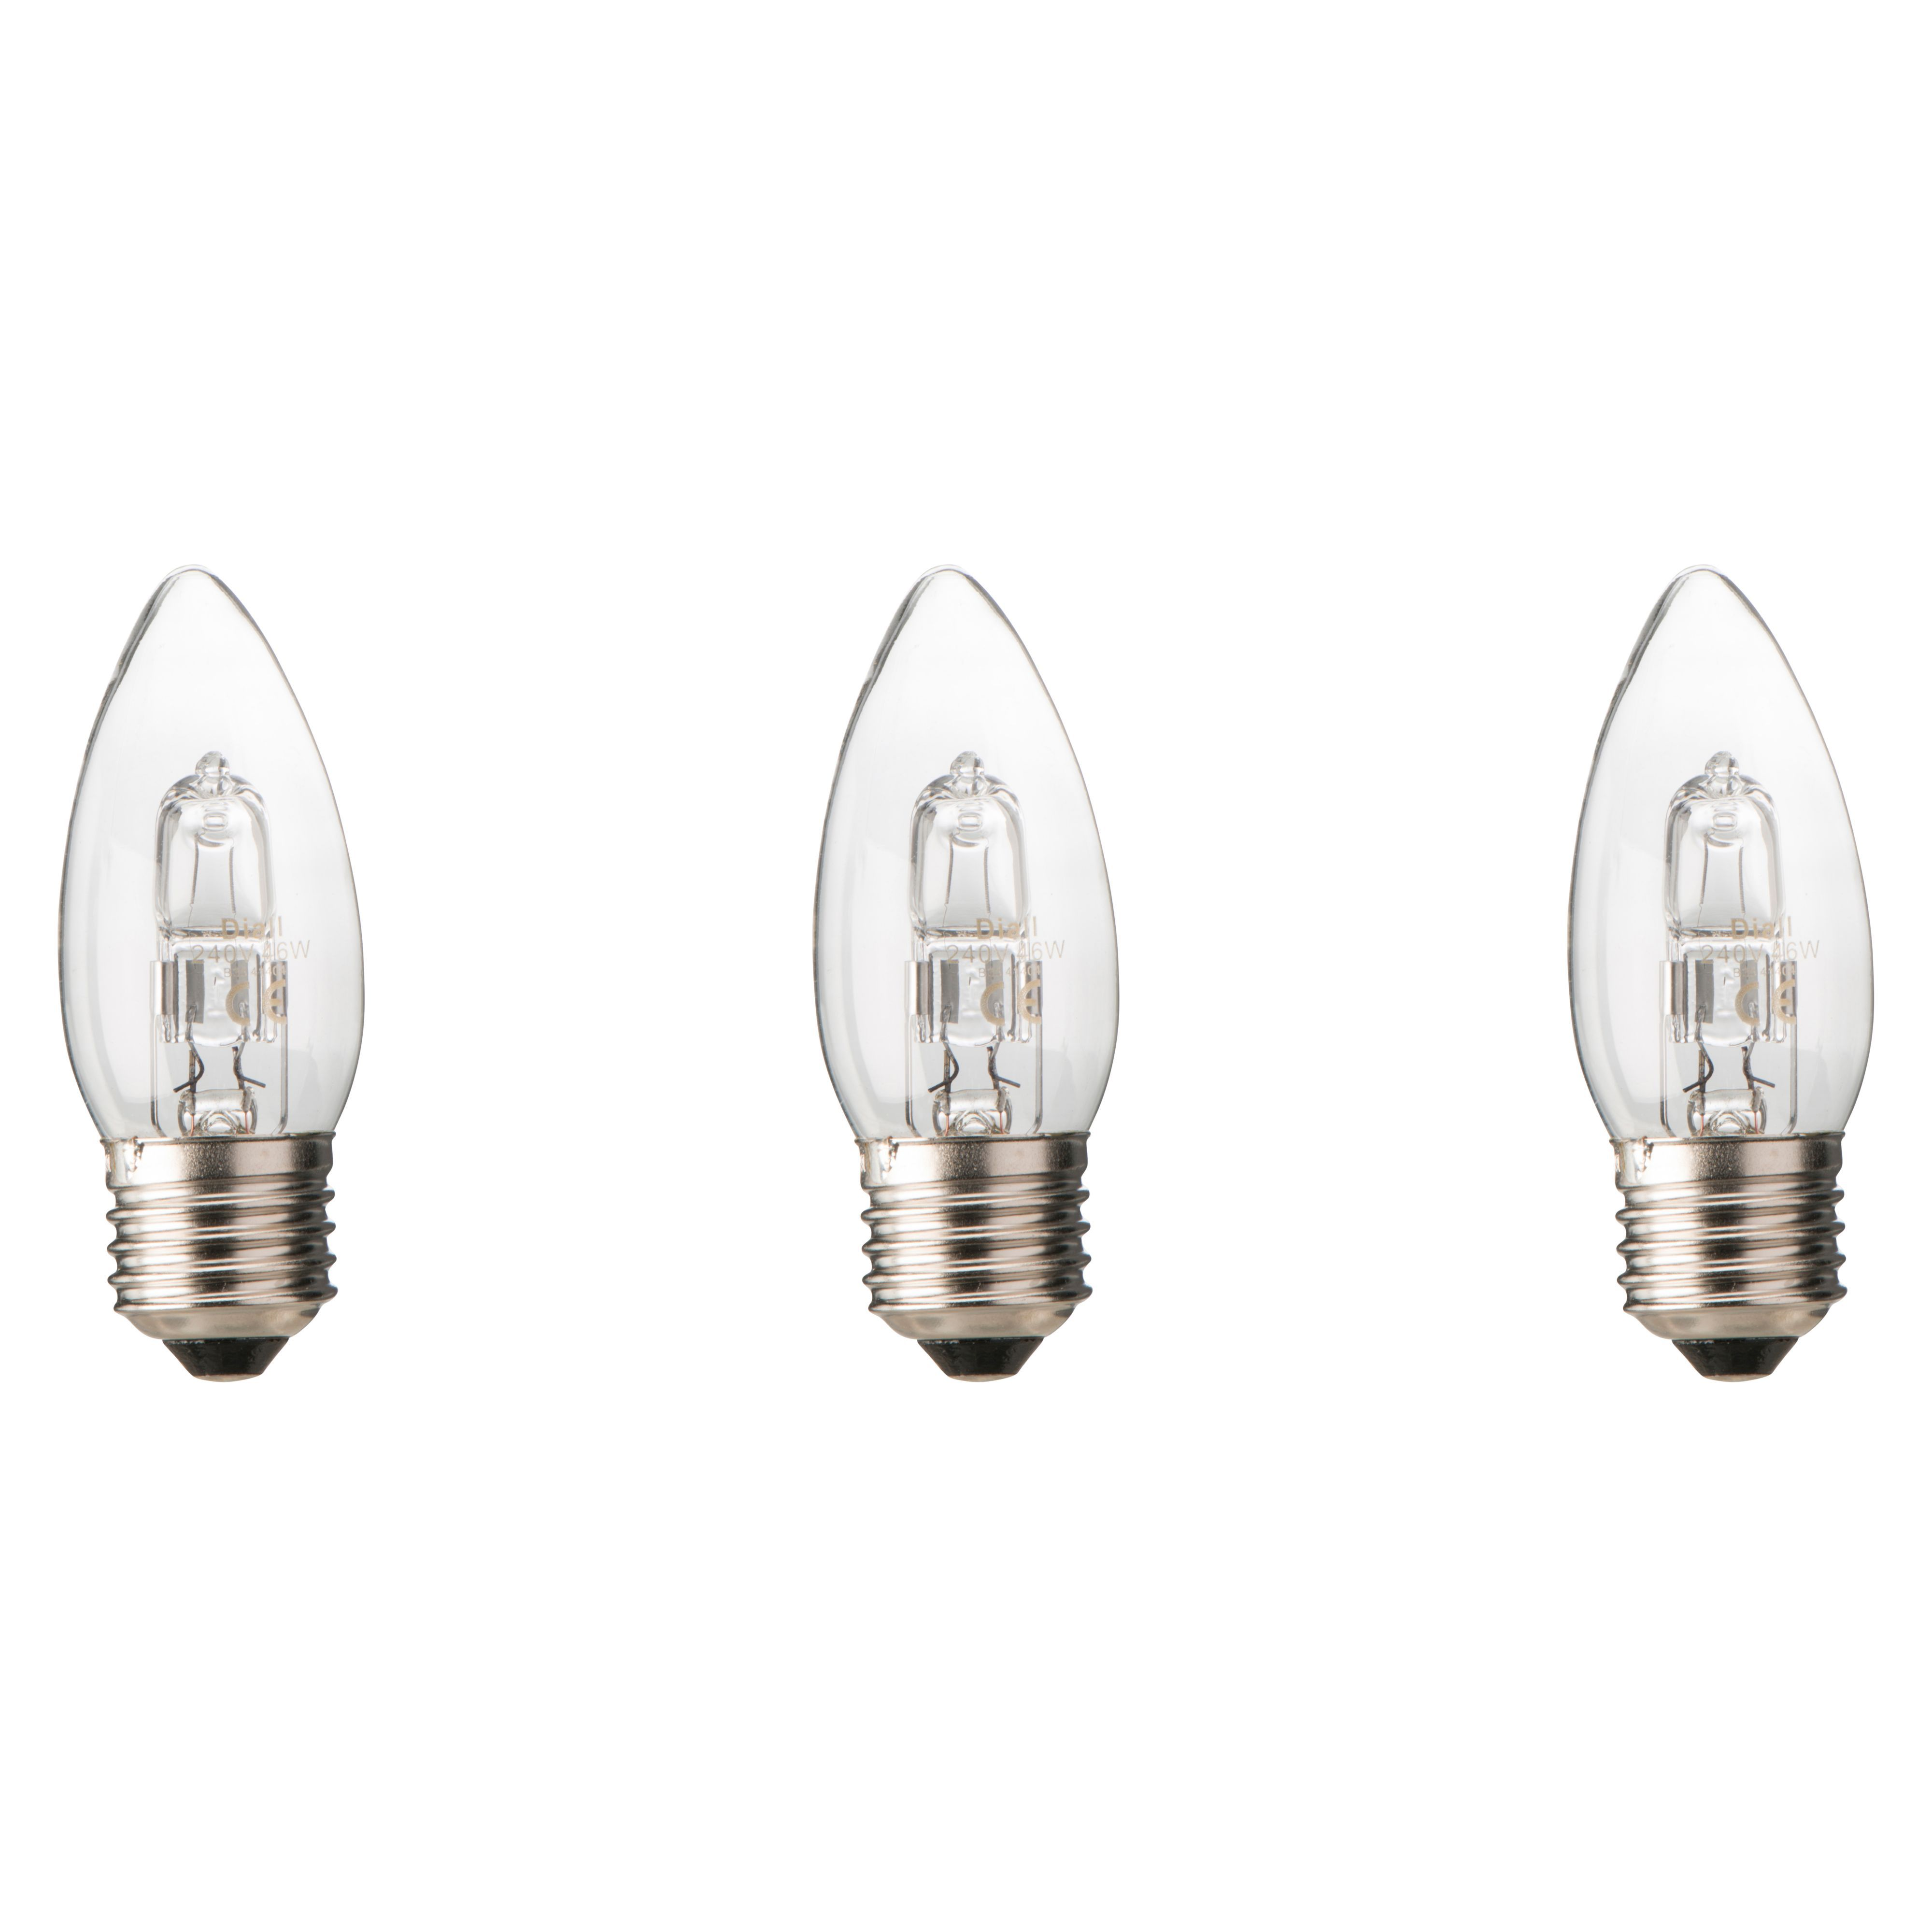 Work Light Screwfix: Diall E27 46W Halogen Dimmable Candle Light Bulb, Pack Of